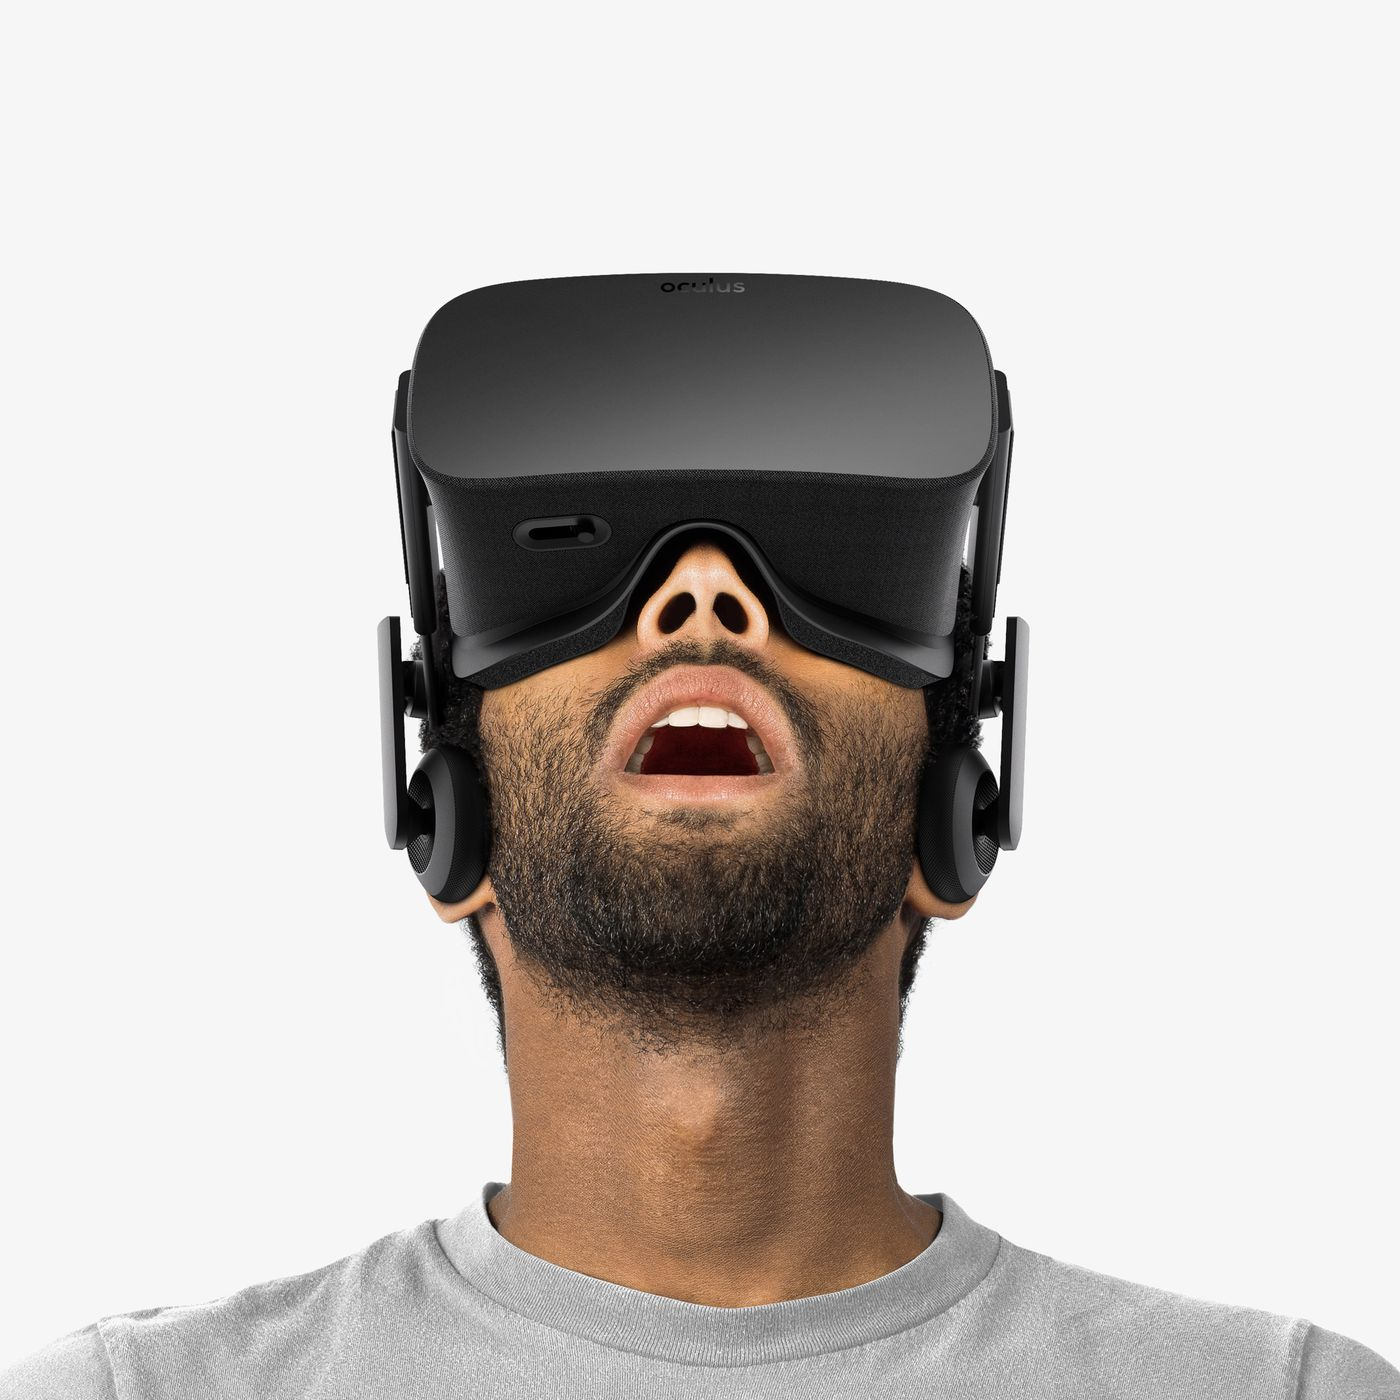 2861c9fc0642 Best Buy is closing nearly half its Oculus VR demo stations ...